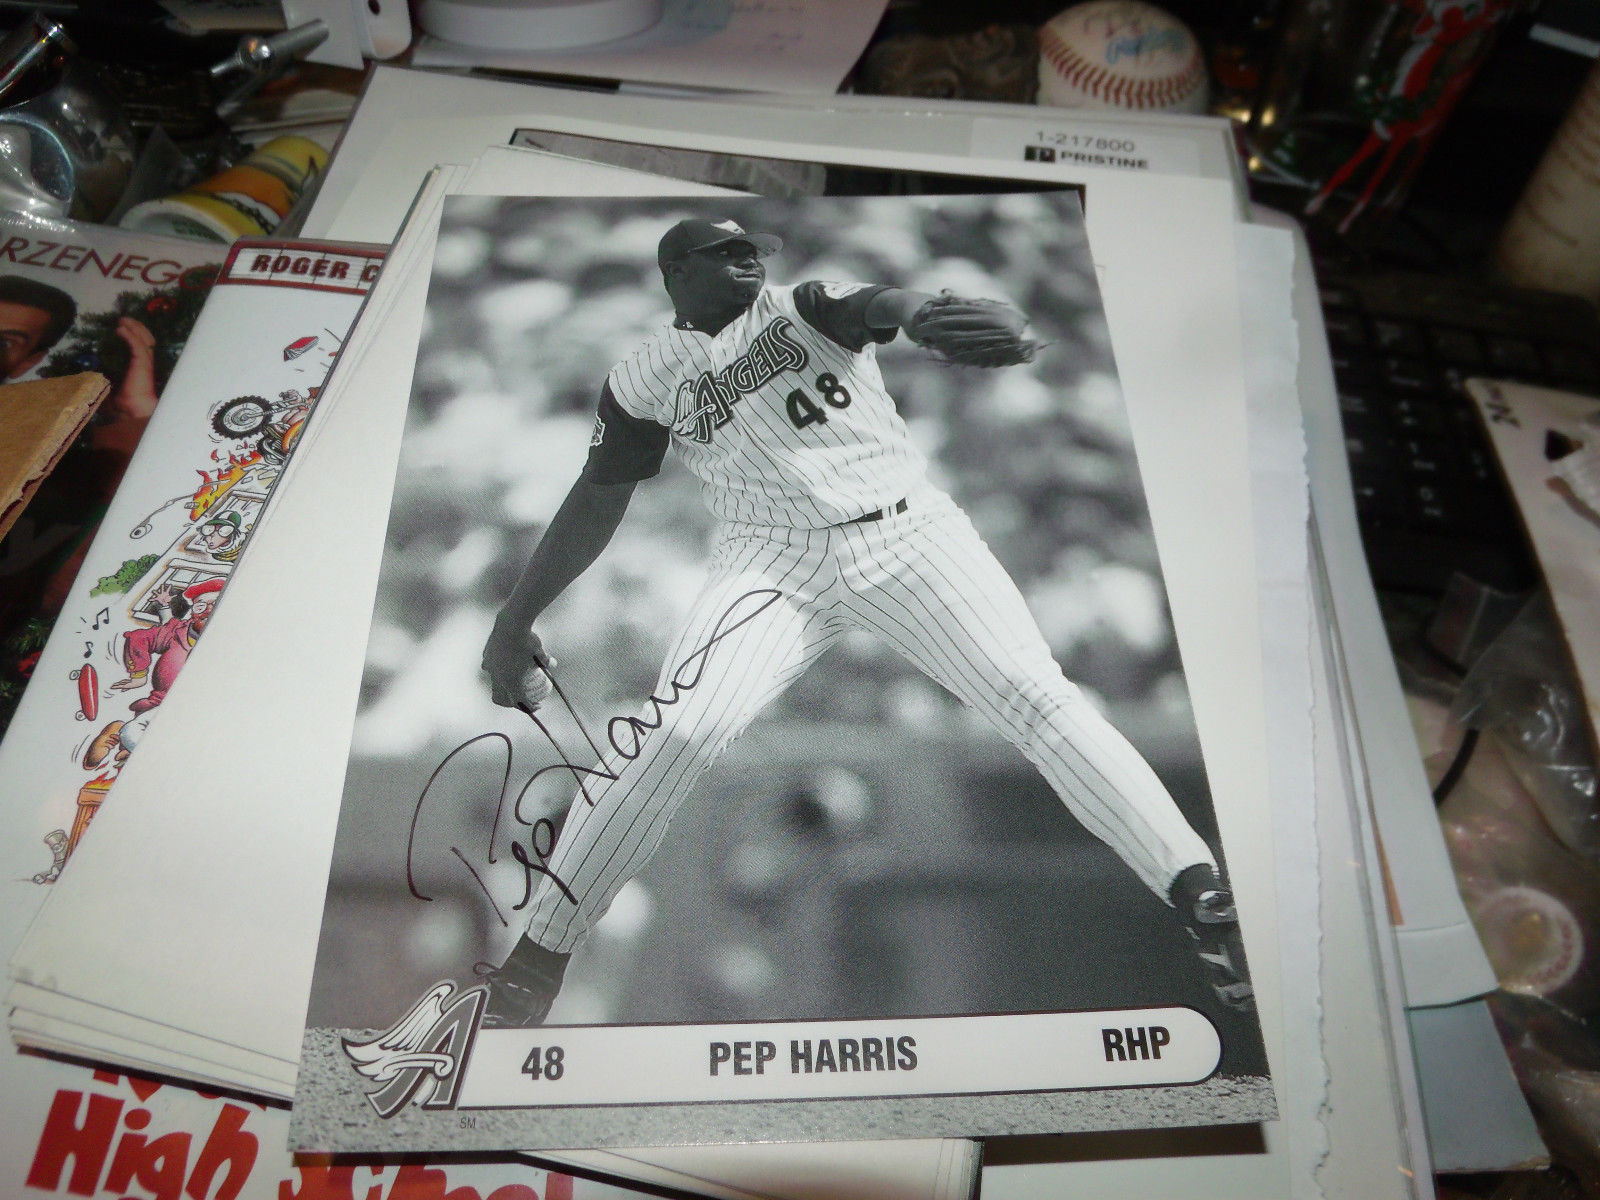 PEP HARRIS HAND SIGNED 5X7 PHOTO CARD ANGELS BASEBALL